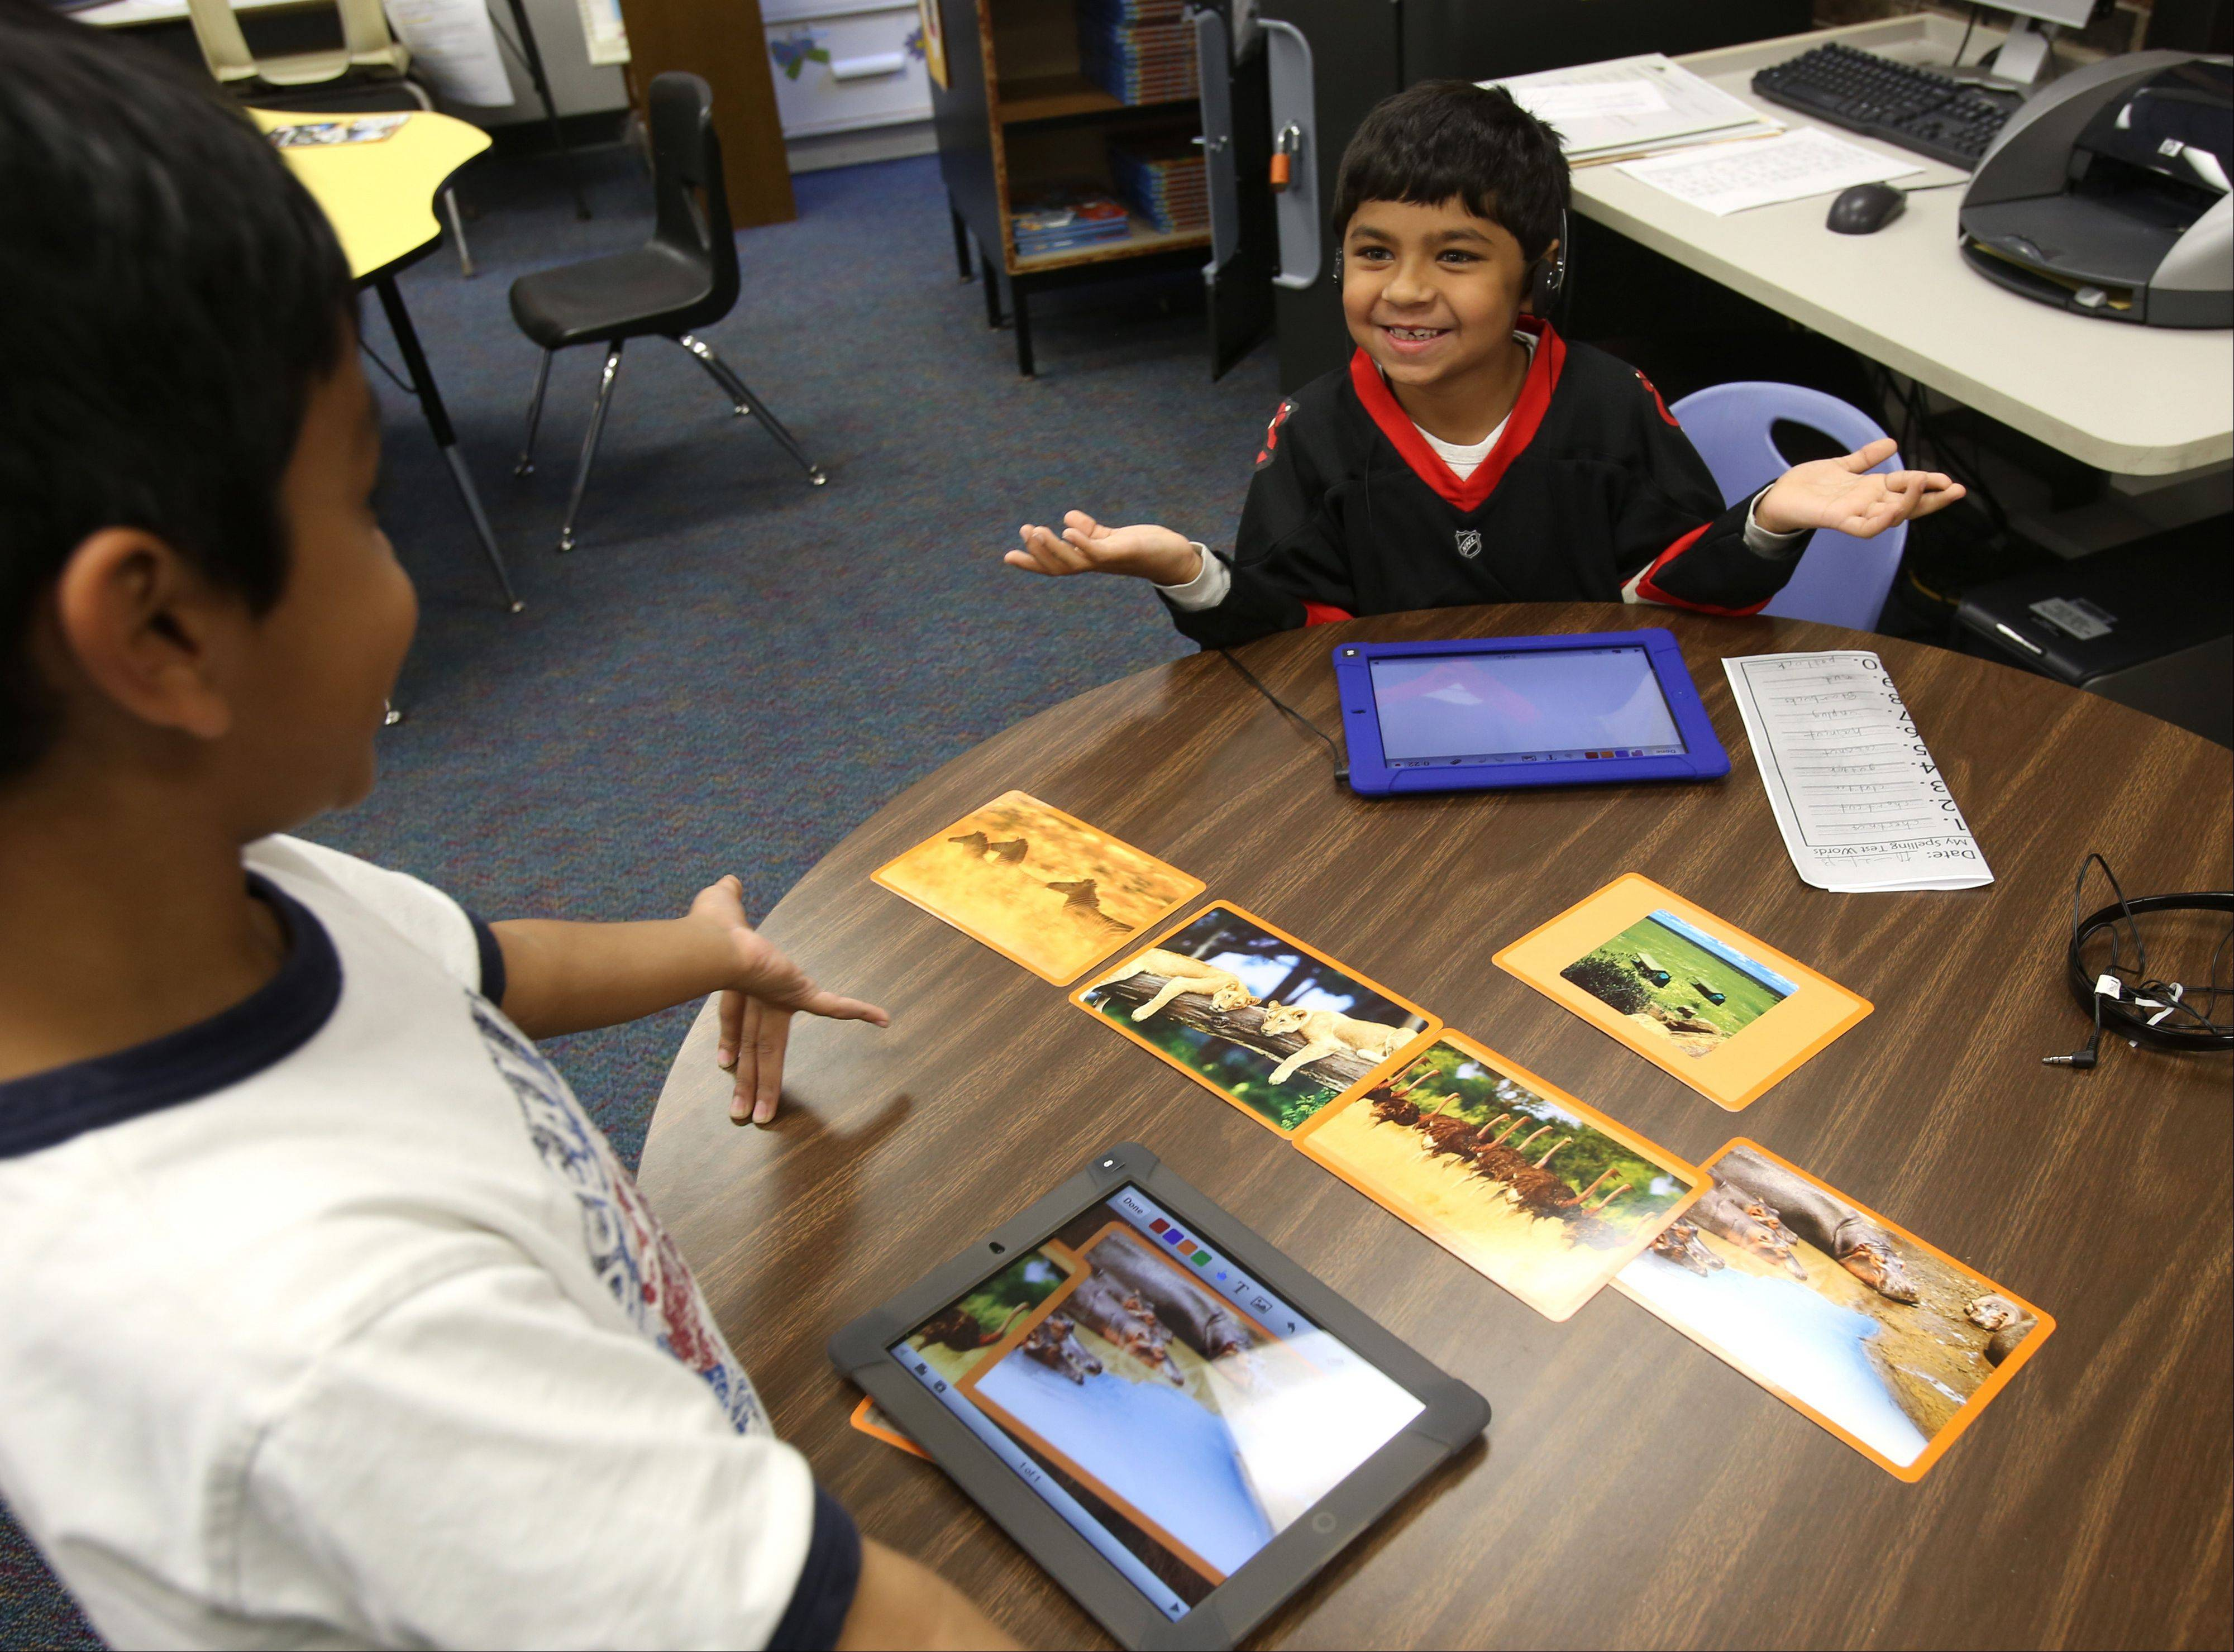 Third-grader students Faris Khan and Rayjan Prakash work on iPads at Brook Forest Elementary in Oak Brook. Principal Kelly Voliva said the school uses technology in some cases to help teachers challenge gifted students, assist struggling students or give assignments for small-group work.